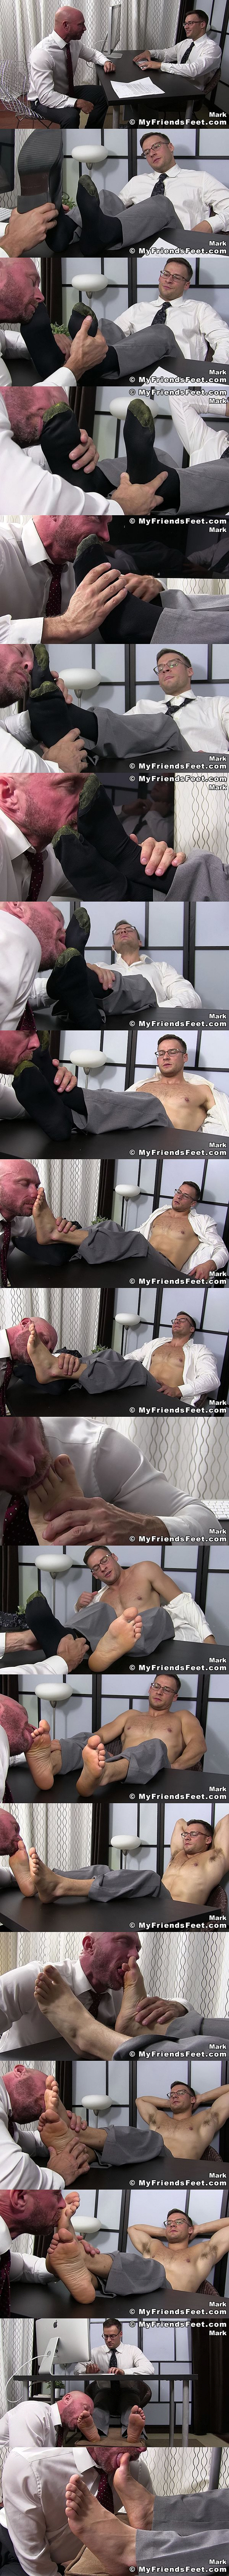 Myfriendsfeet - Killian Knox Worships Mark Summers 02